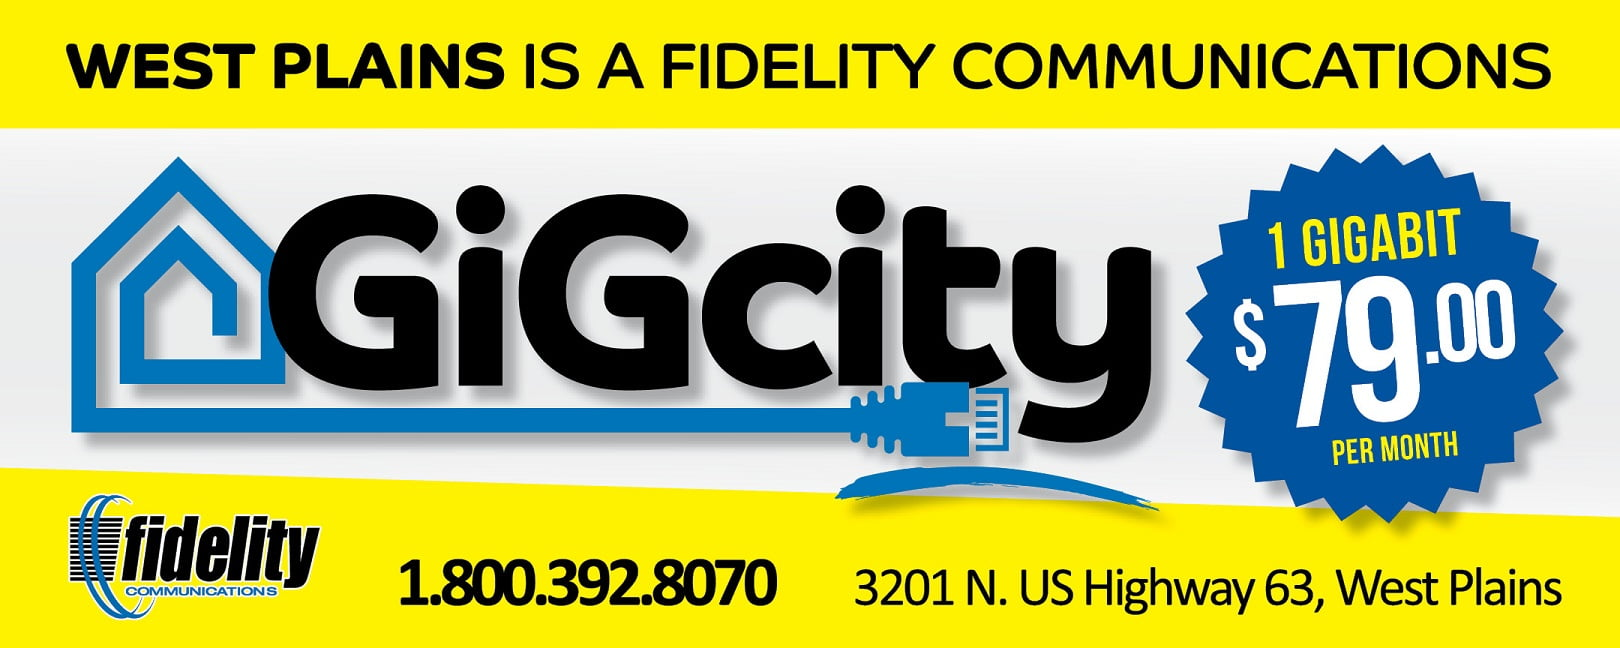 Fidelity Communications Now Offering 1 Gig Internet in West Plains